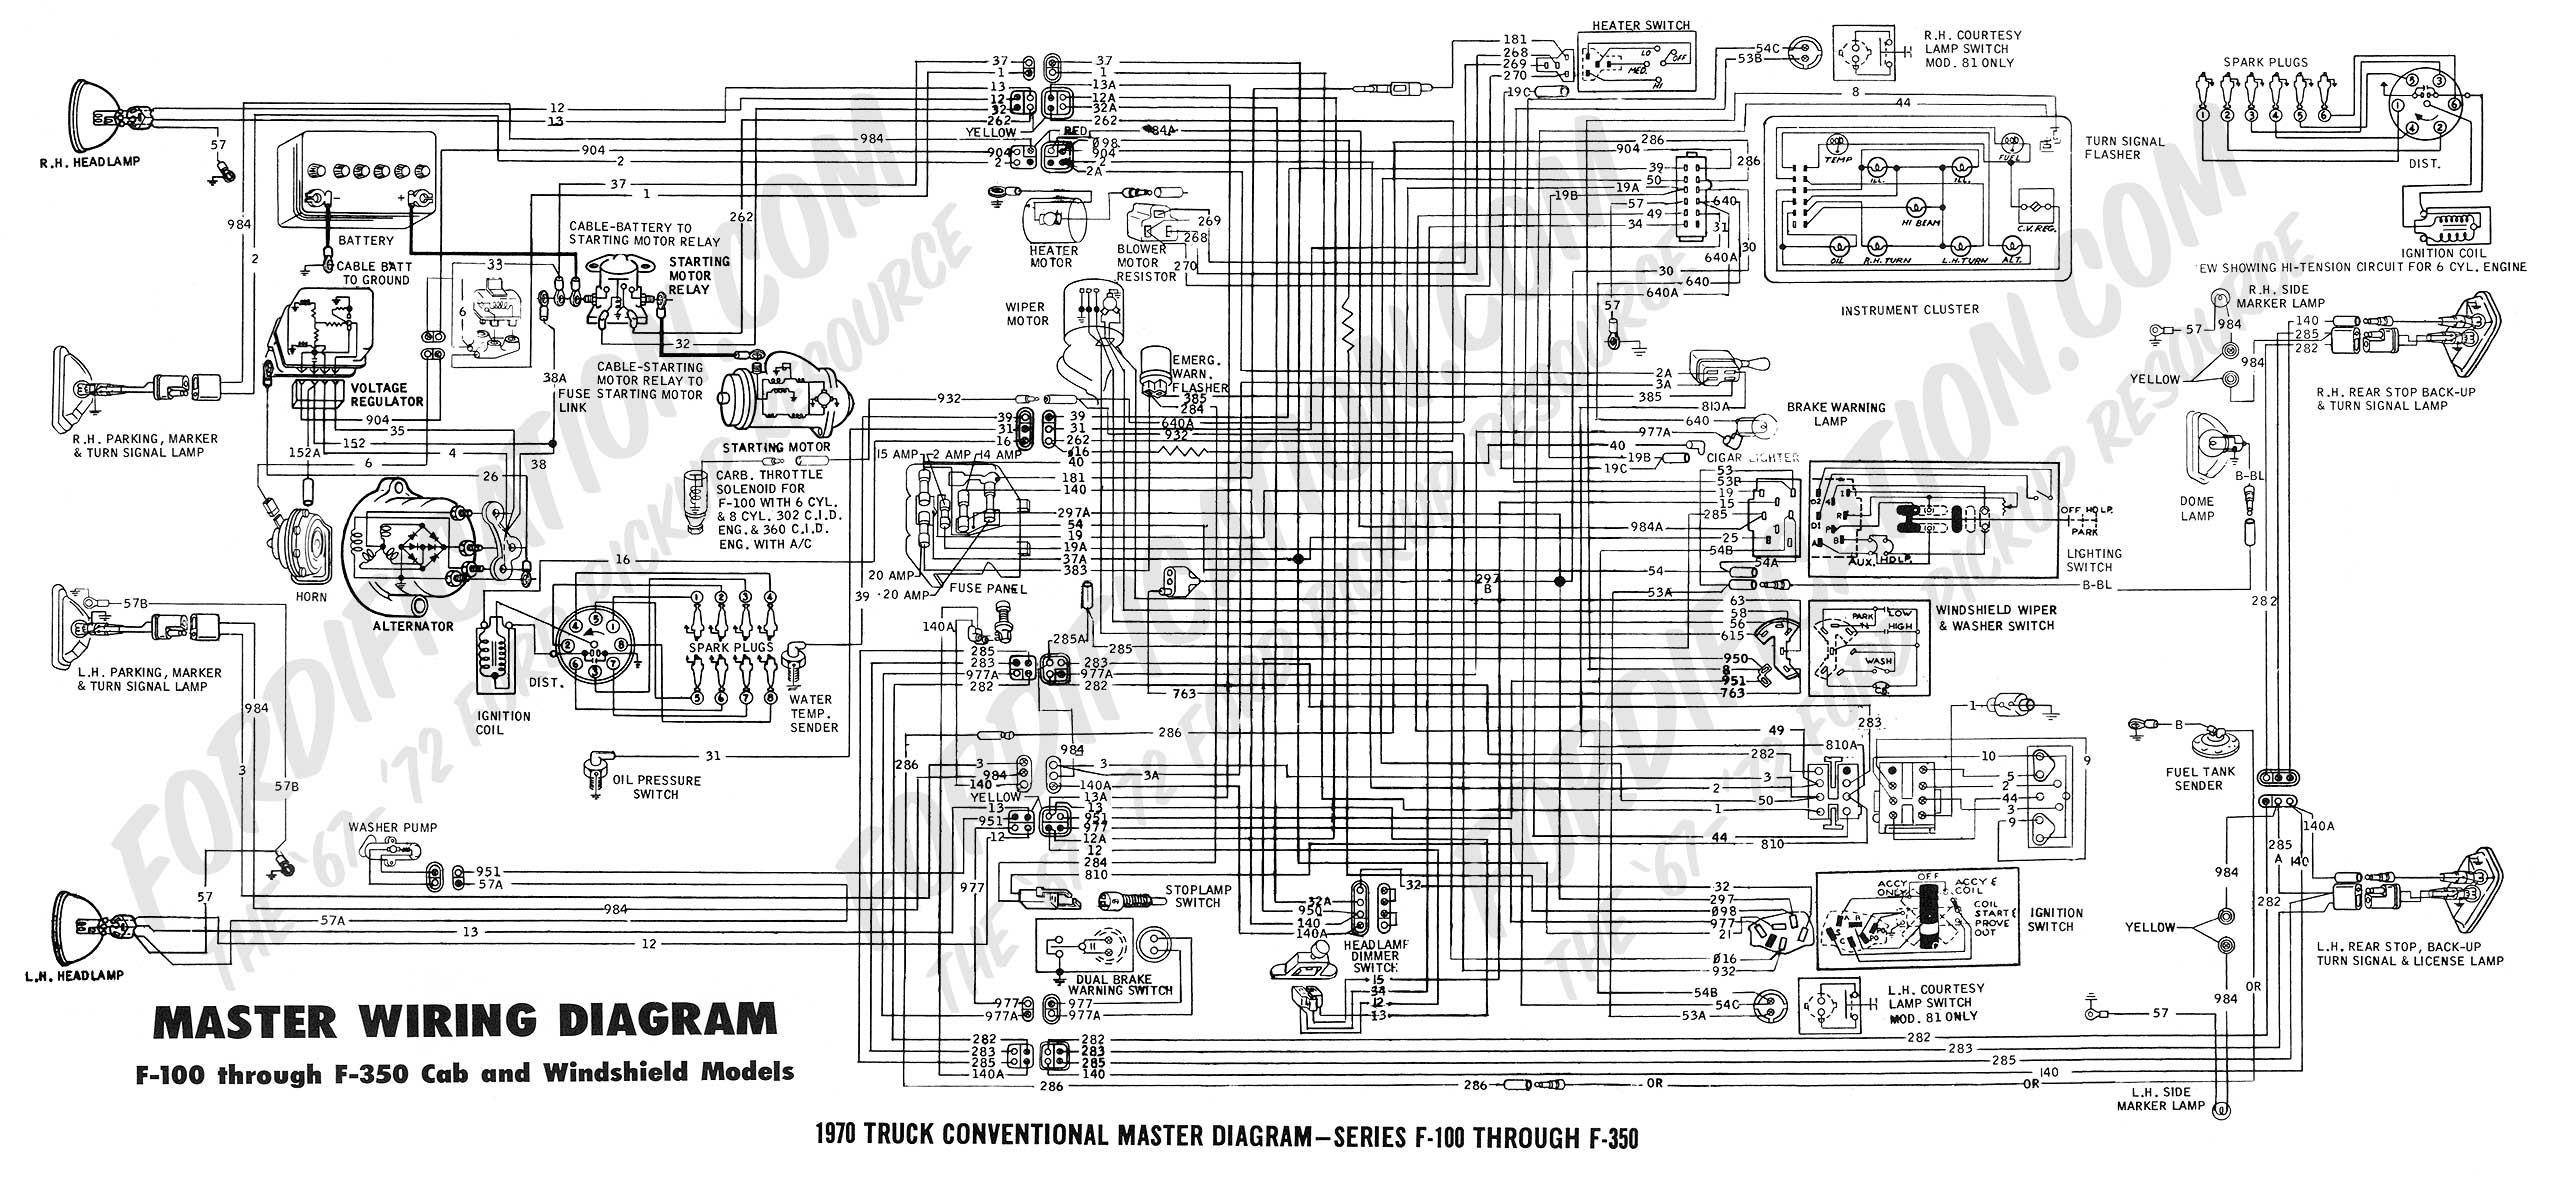 wiring diagram 70_master ford truck technical drawings and schematics section h wiring old ford wiring harness at honlapkeszites.co